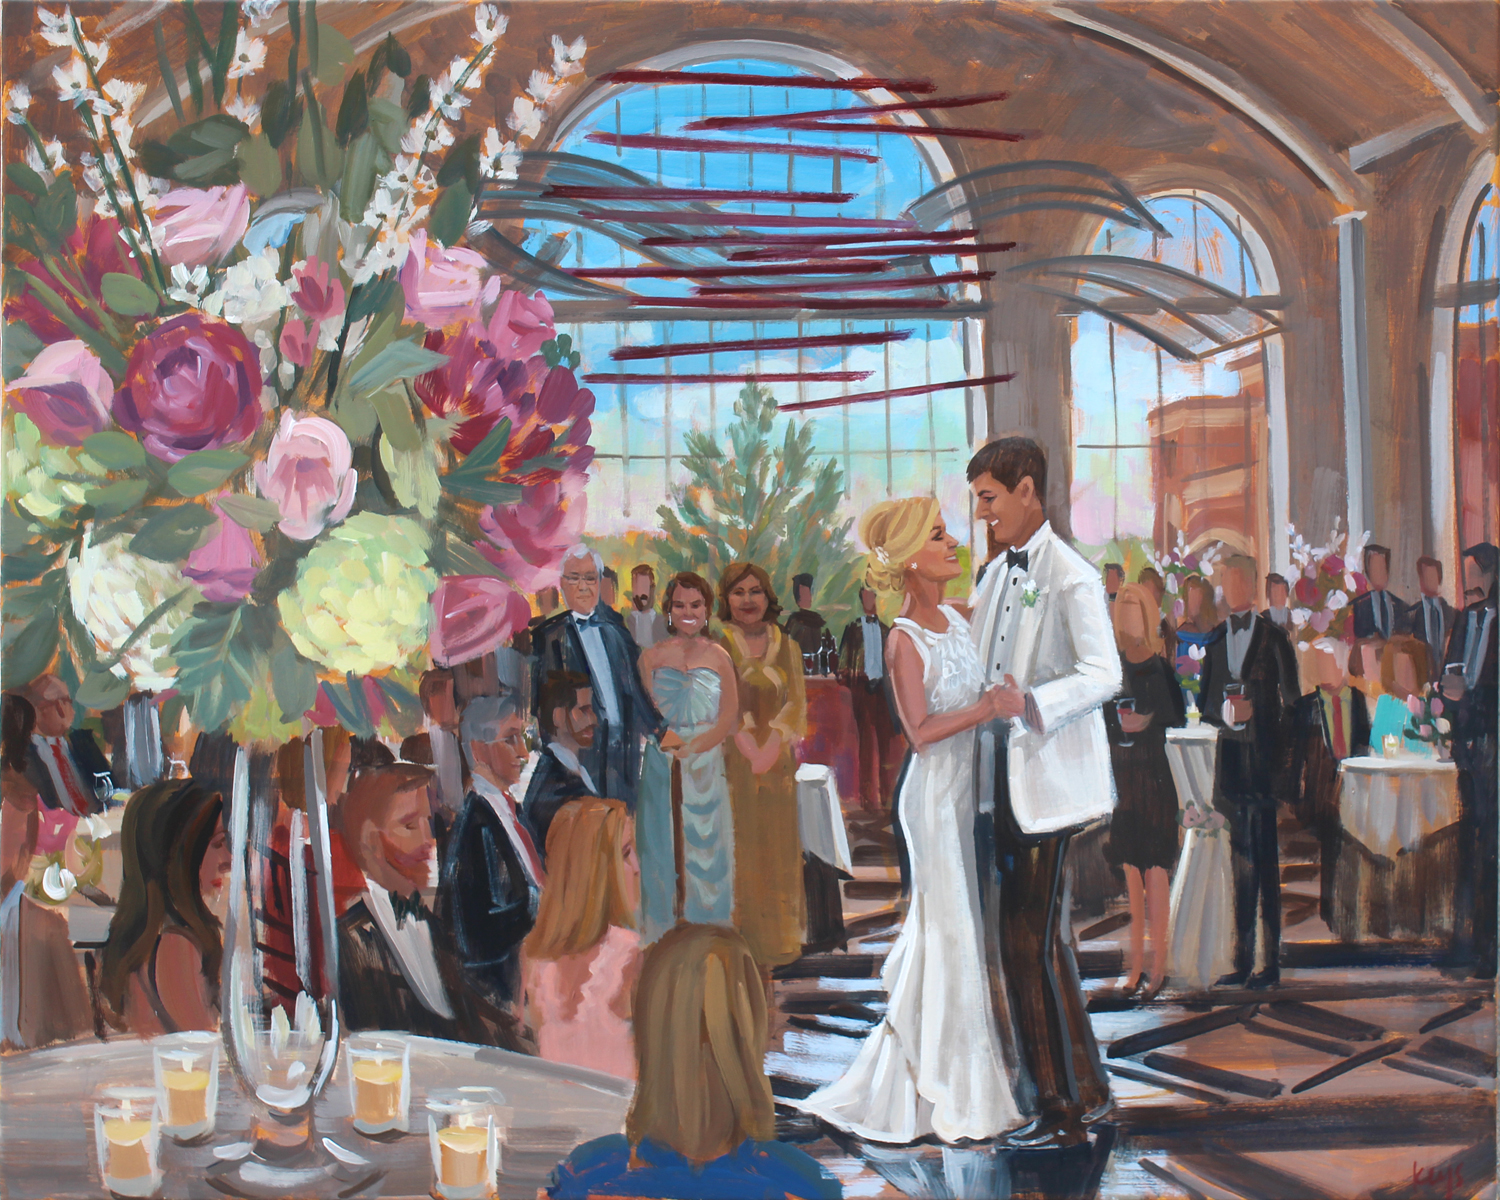 Live Wedding Painter, Ben Keys, captured Claire + Patrick's first dance at The Classic Center in Athens, Georgia.